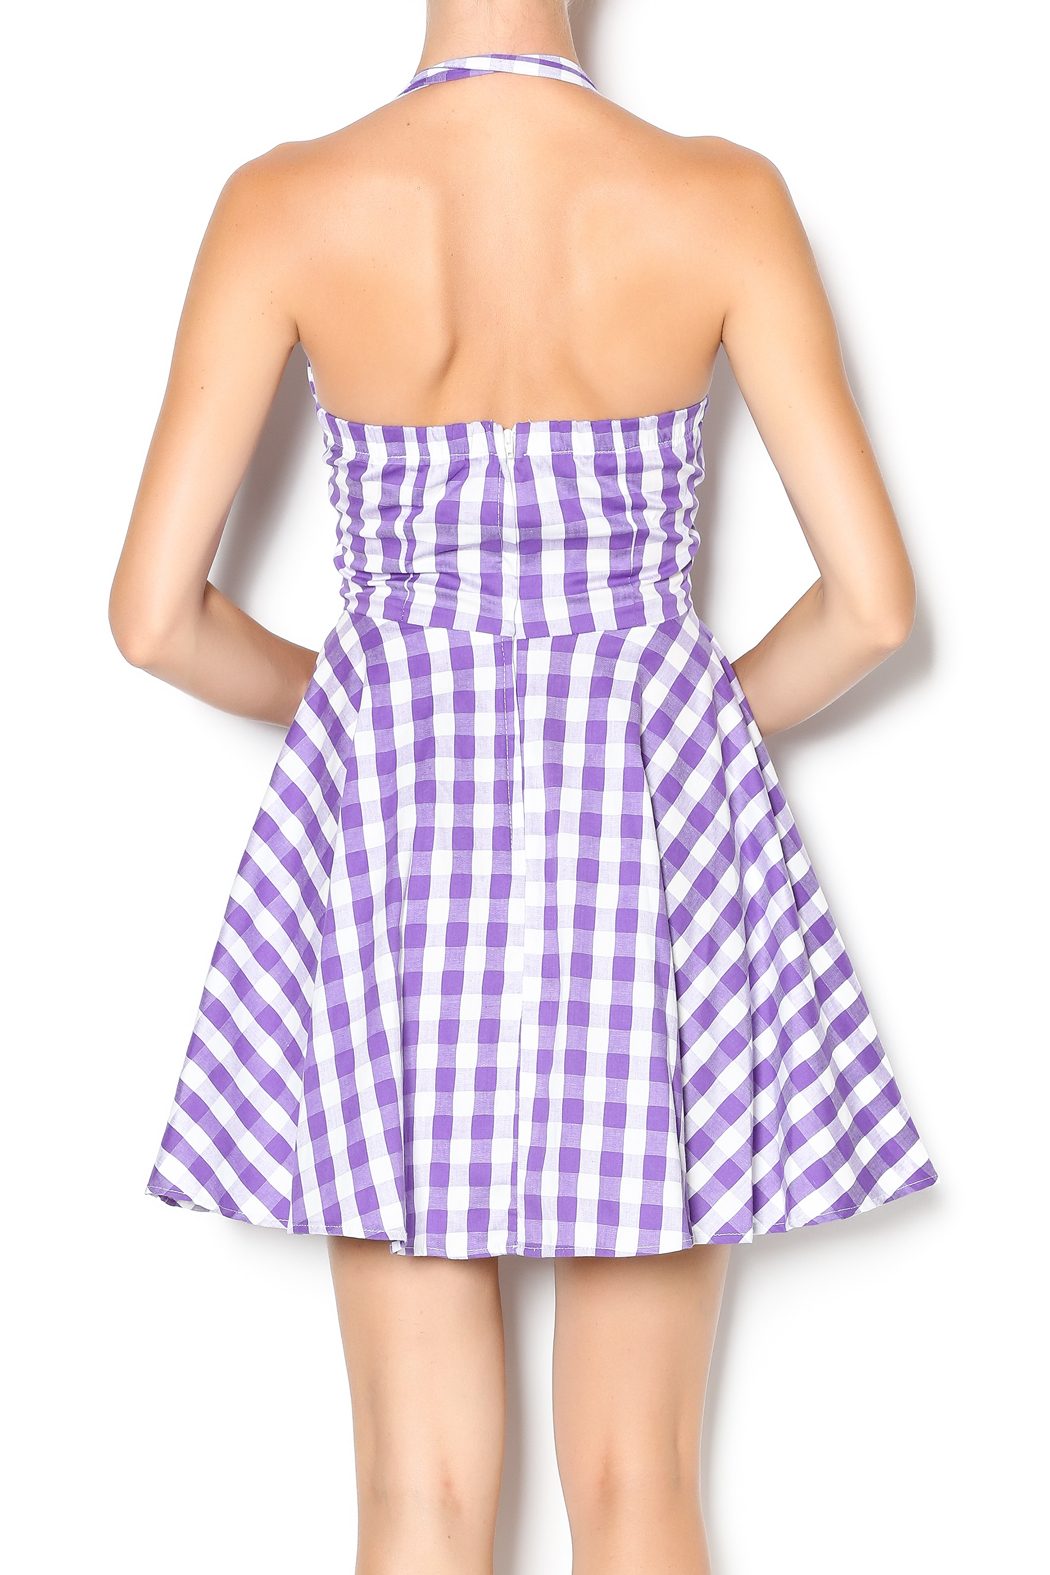 Ixia Purple Gingham Dress From California By Mp Couture